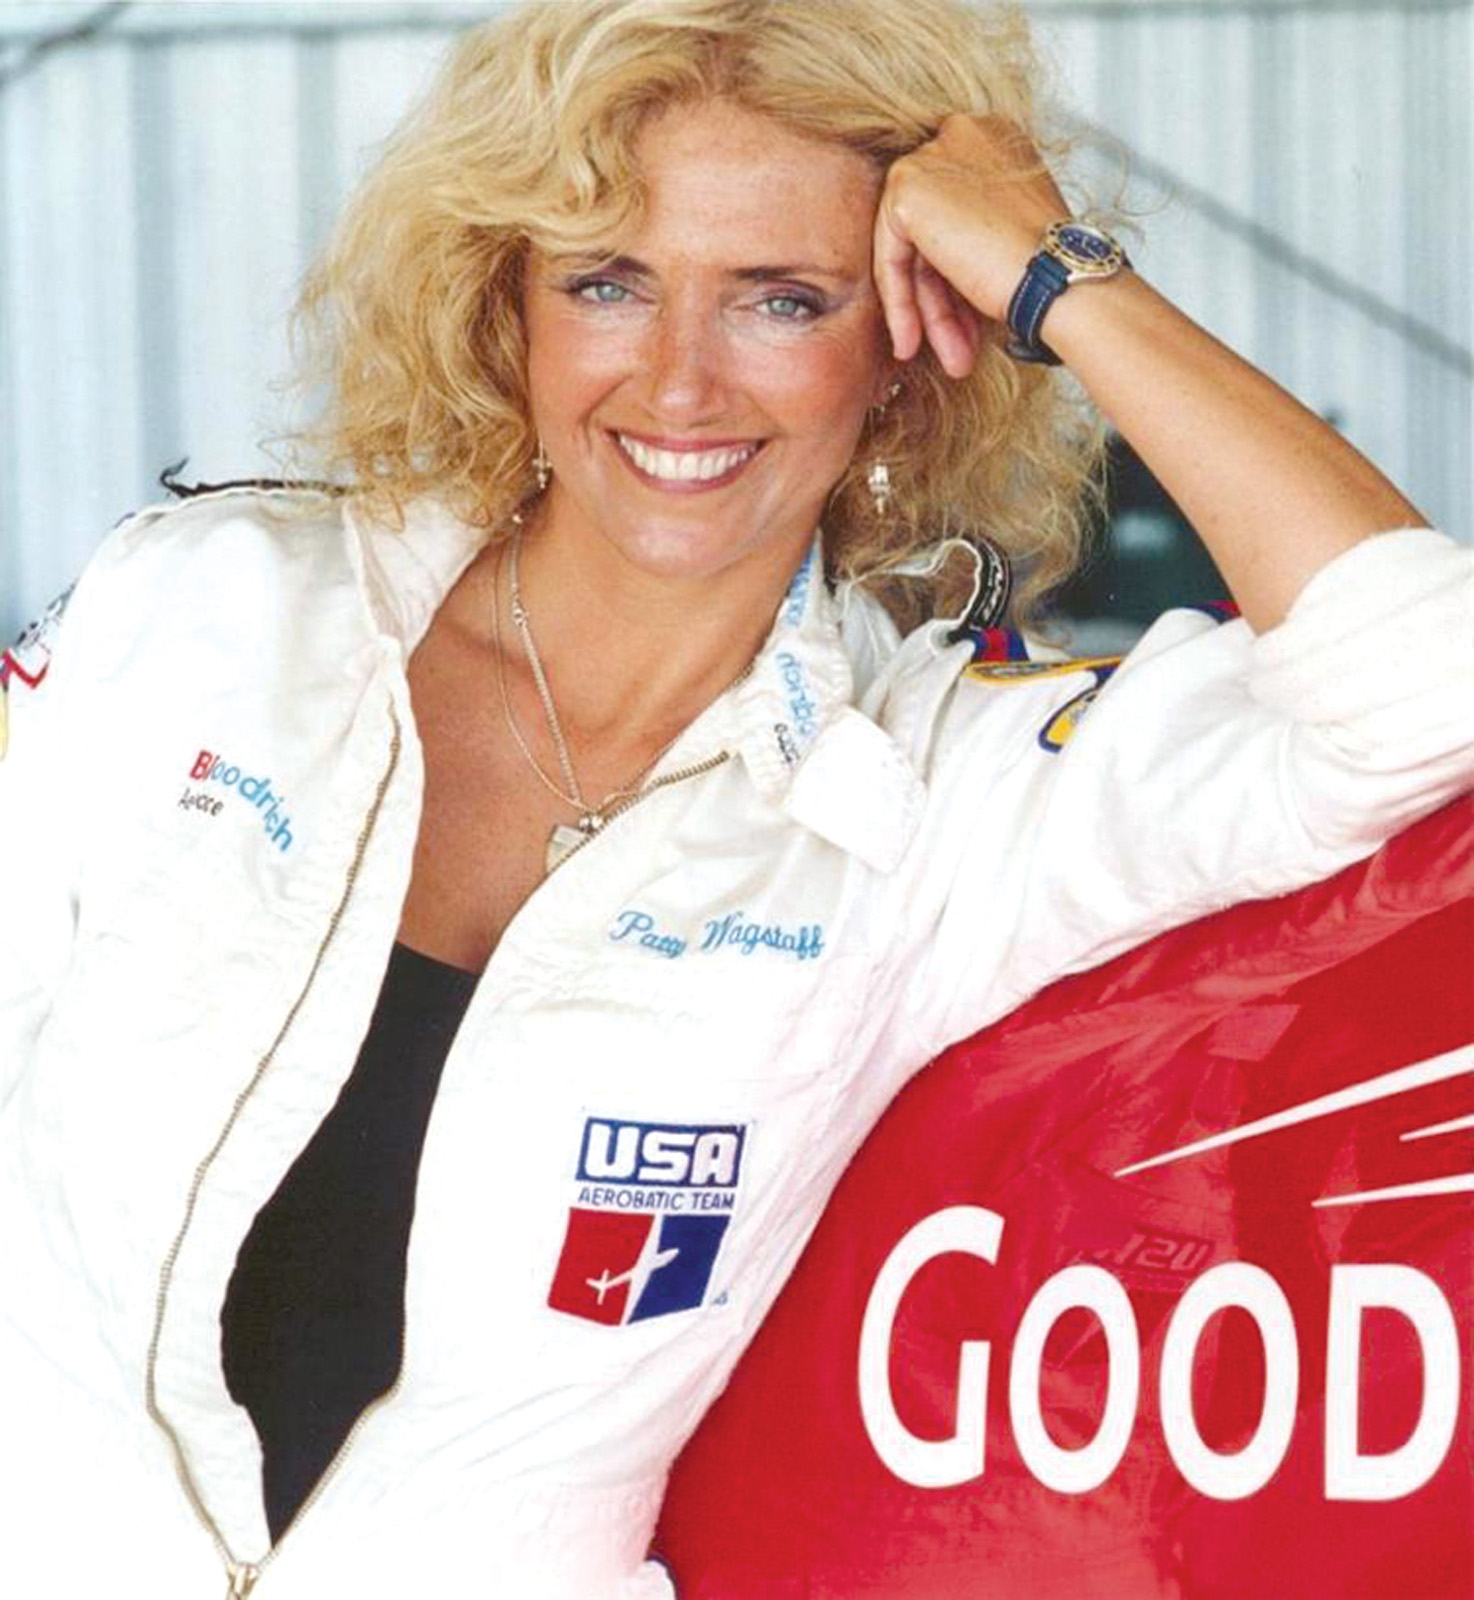 #2 The Aerobat: Patty Wagstaff